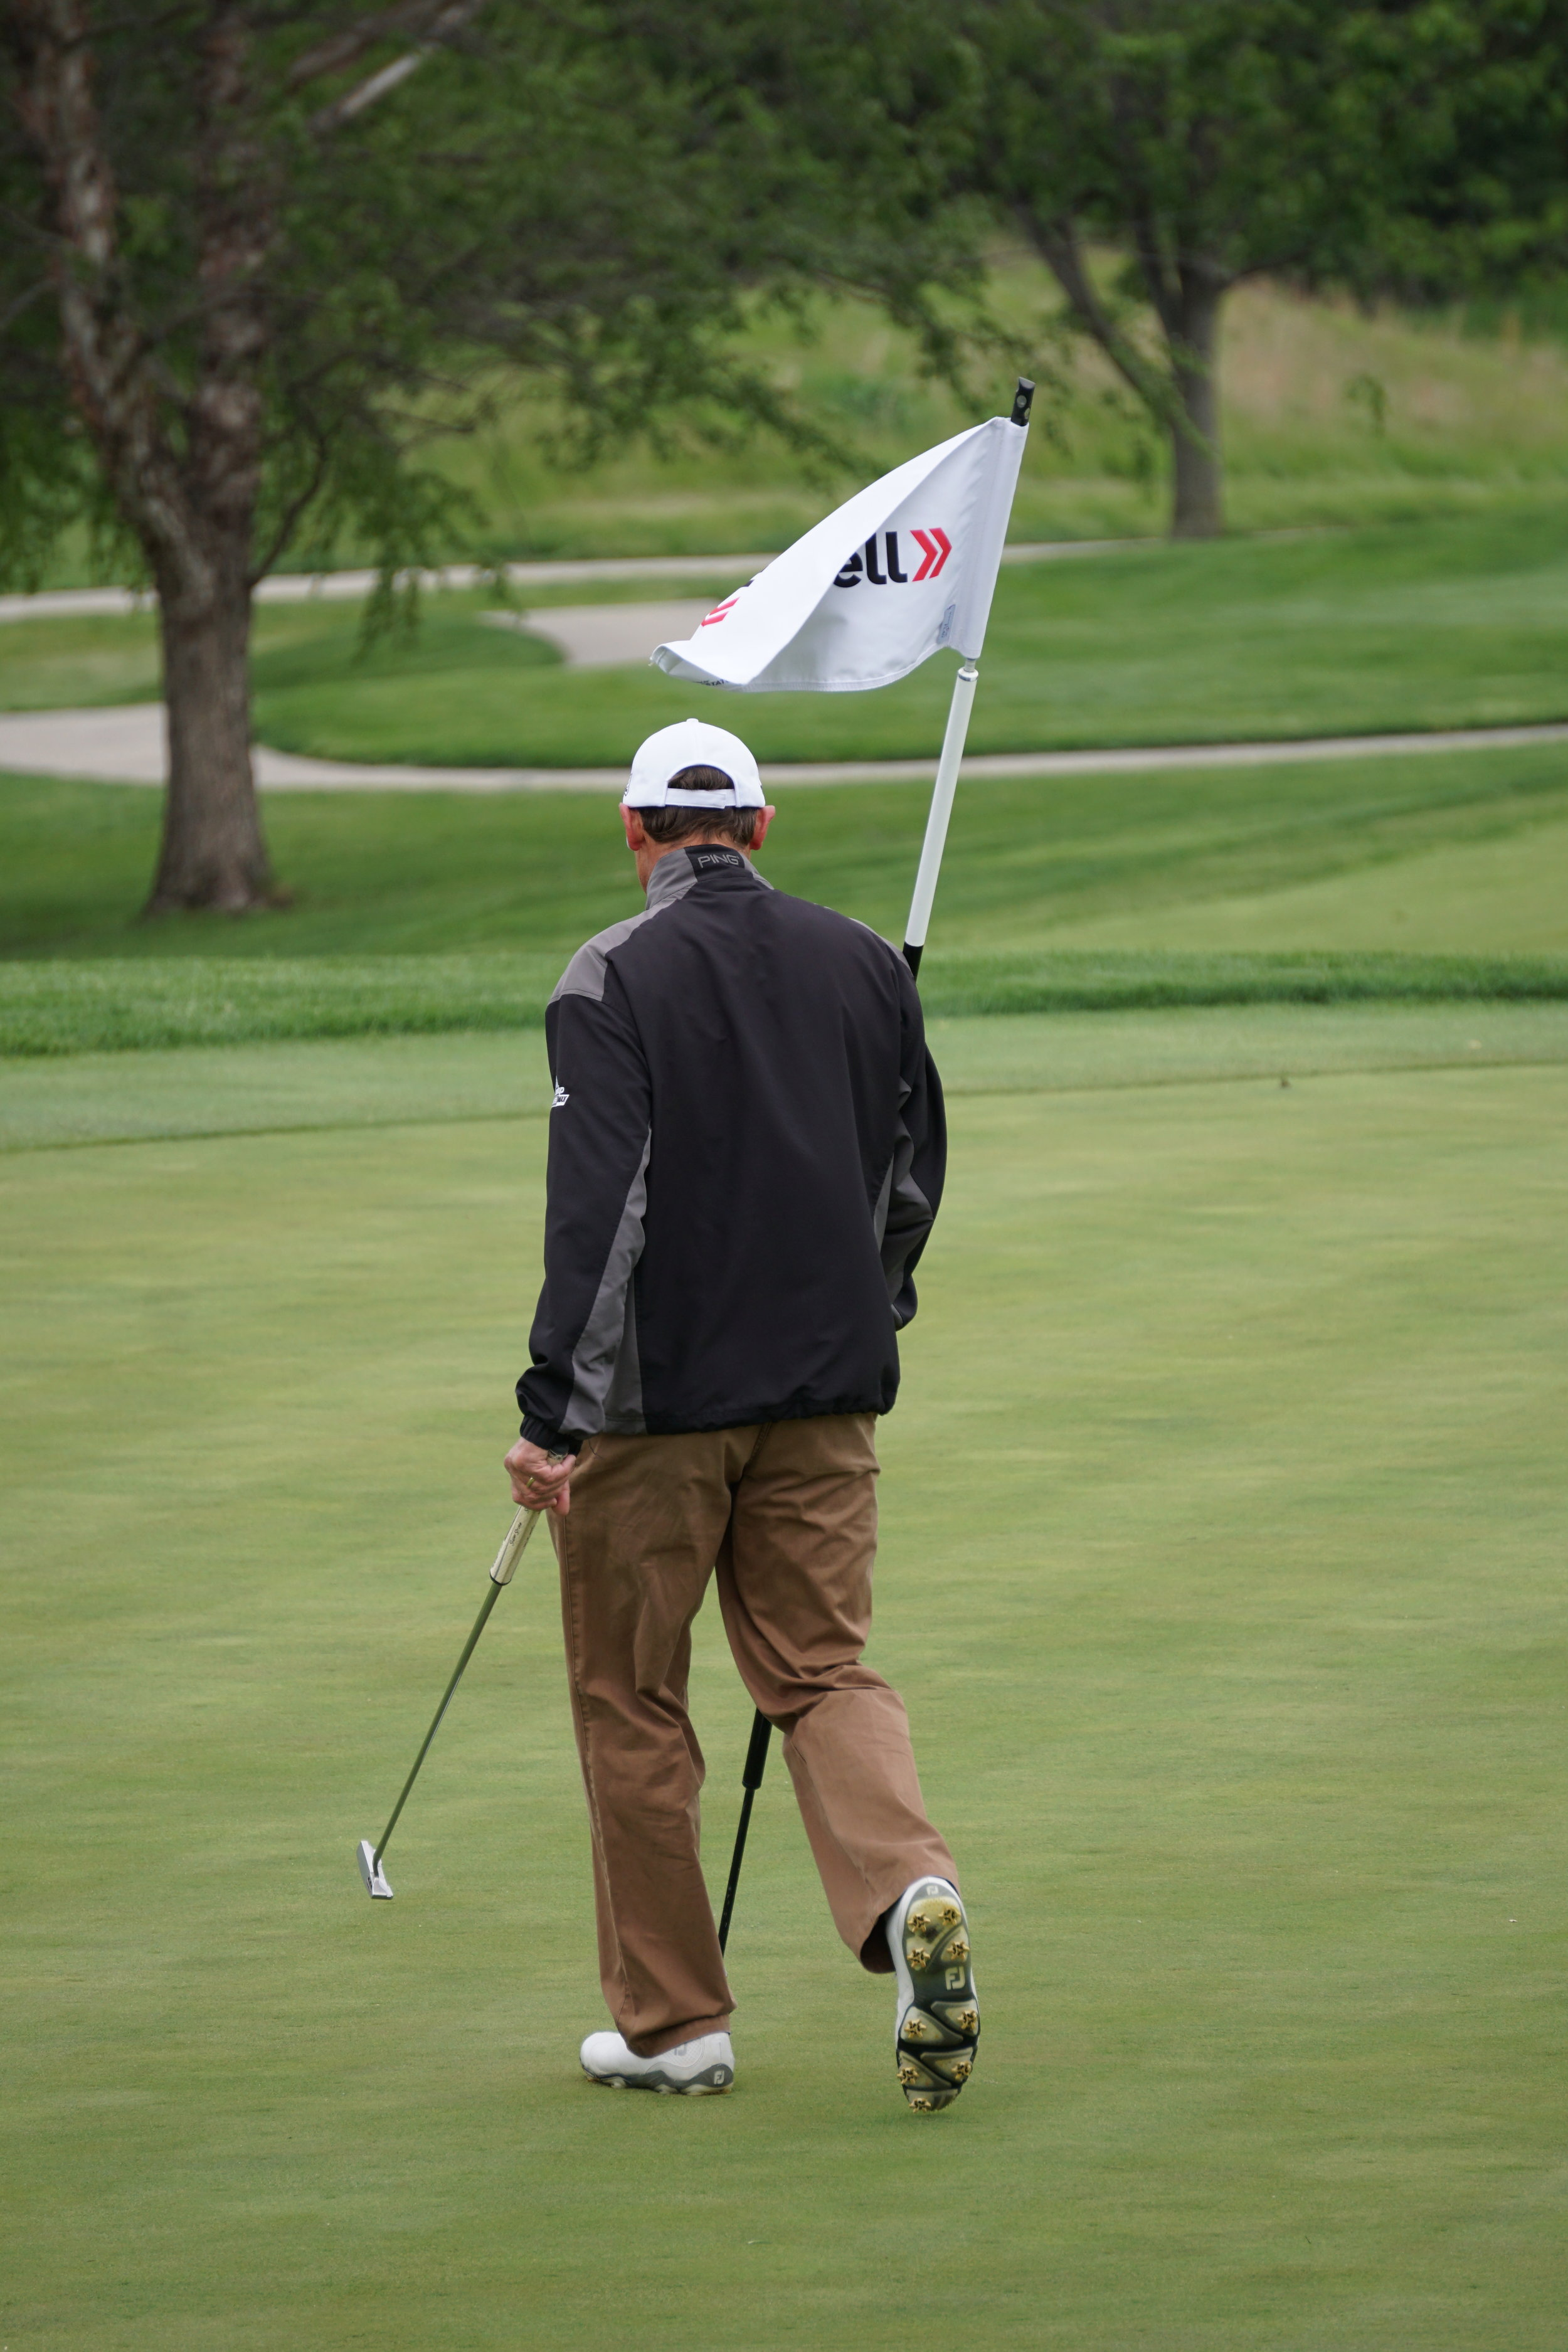 5.20.19_HuskerCatholicGolf_a6300_65.JPG